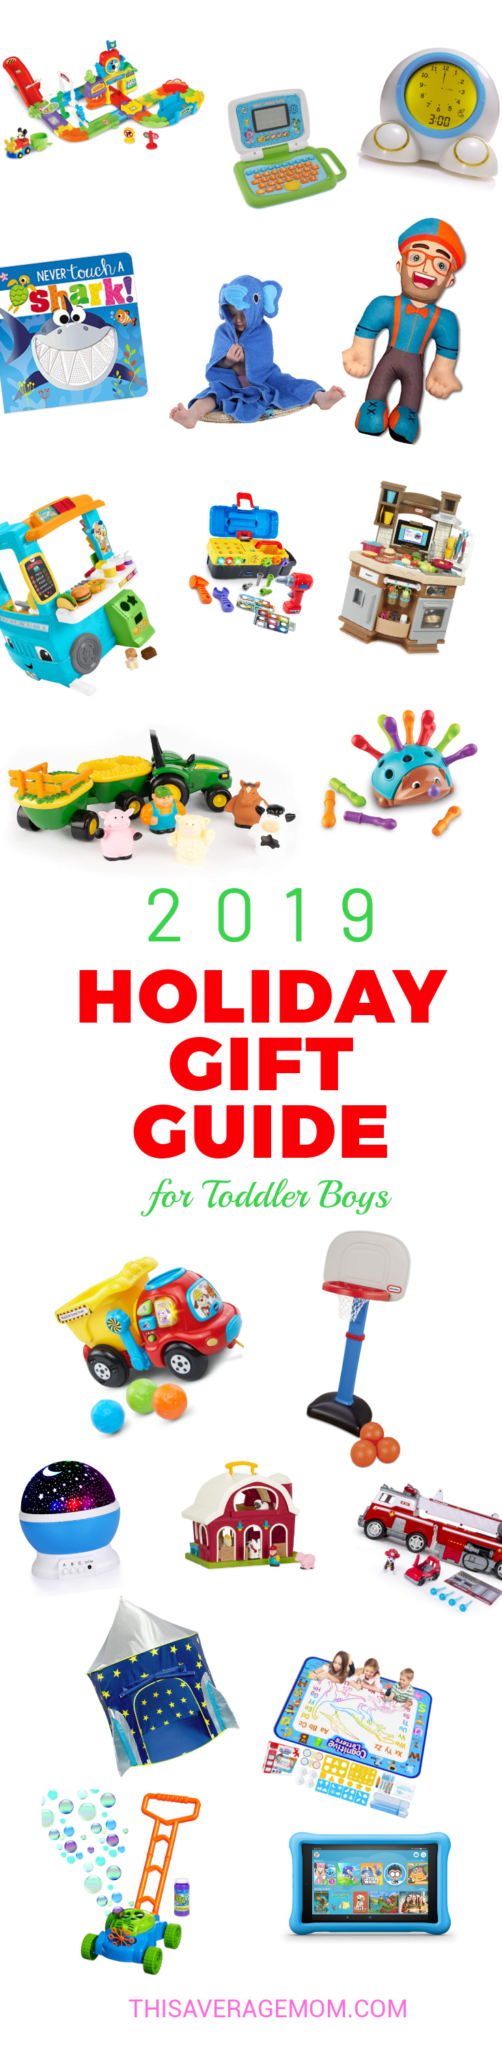 Need some gift ideas for toddler boys? I have you covered! Here's 20 toys that boys 1-3 (and beyond!) will love this Christmas. #christmaslist #santa #holidays